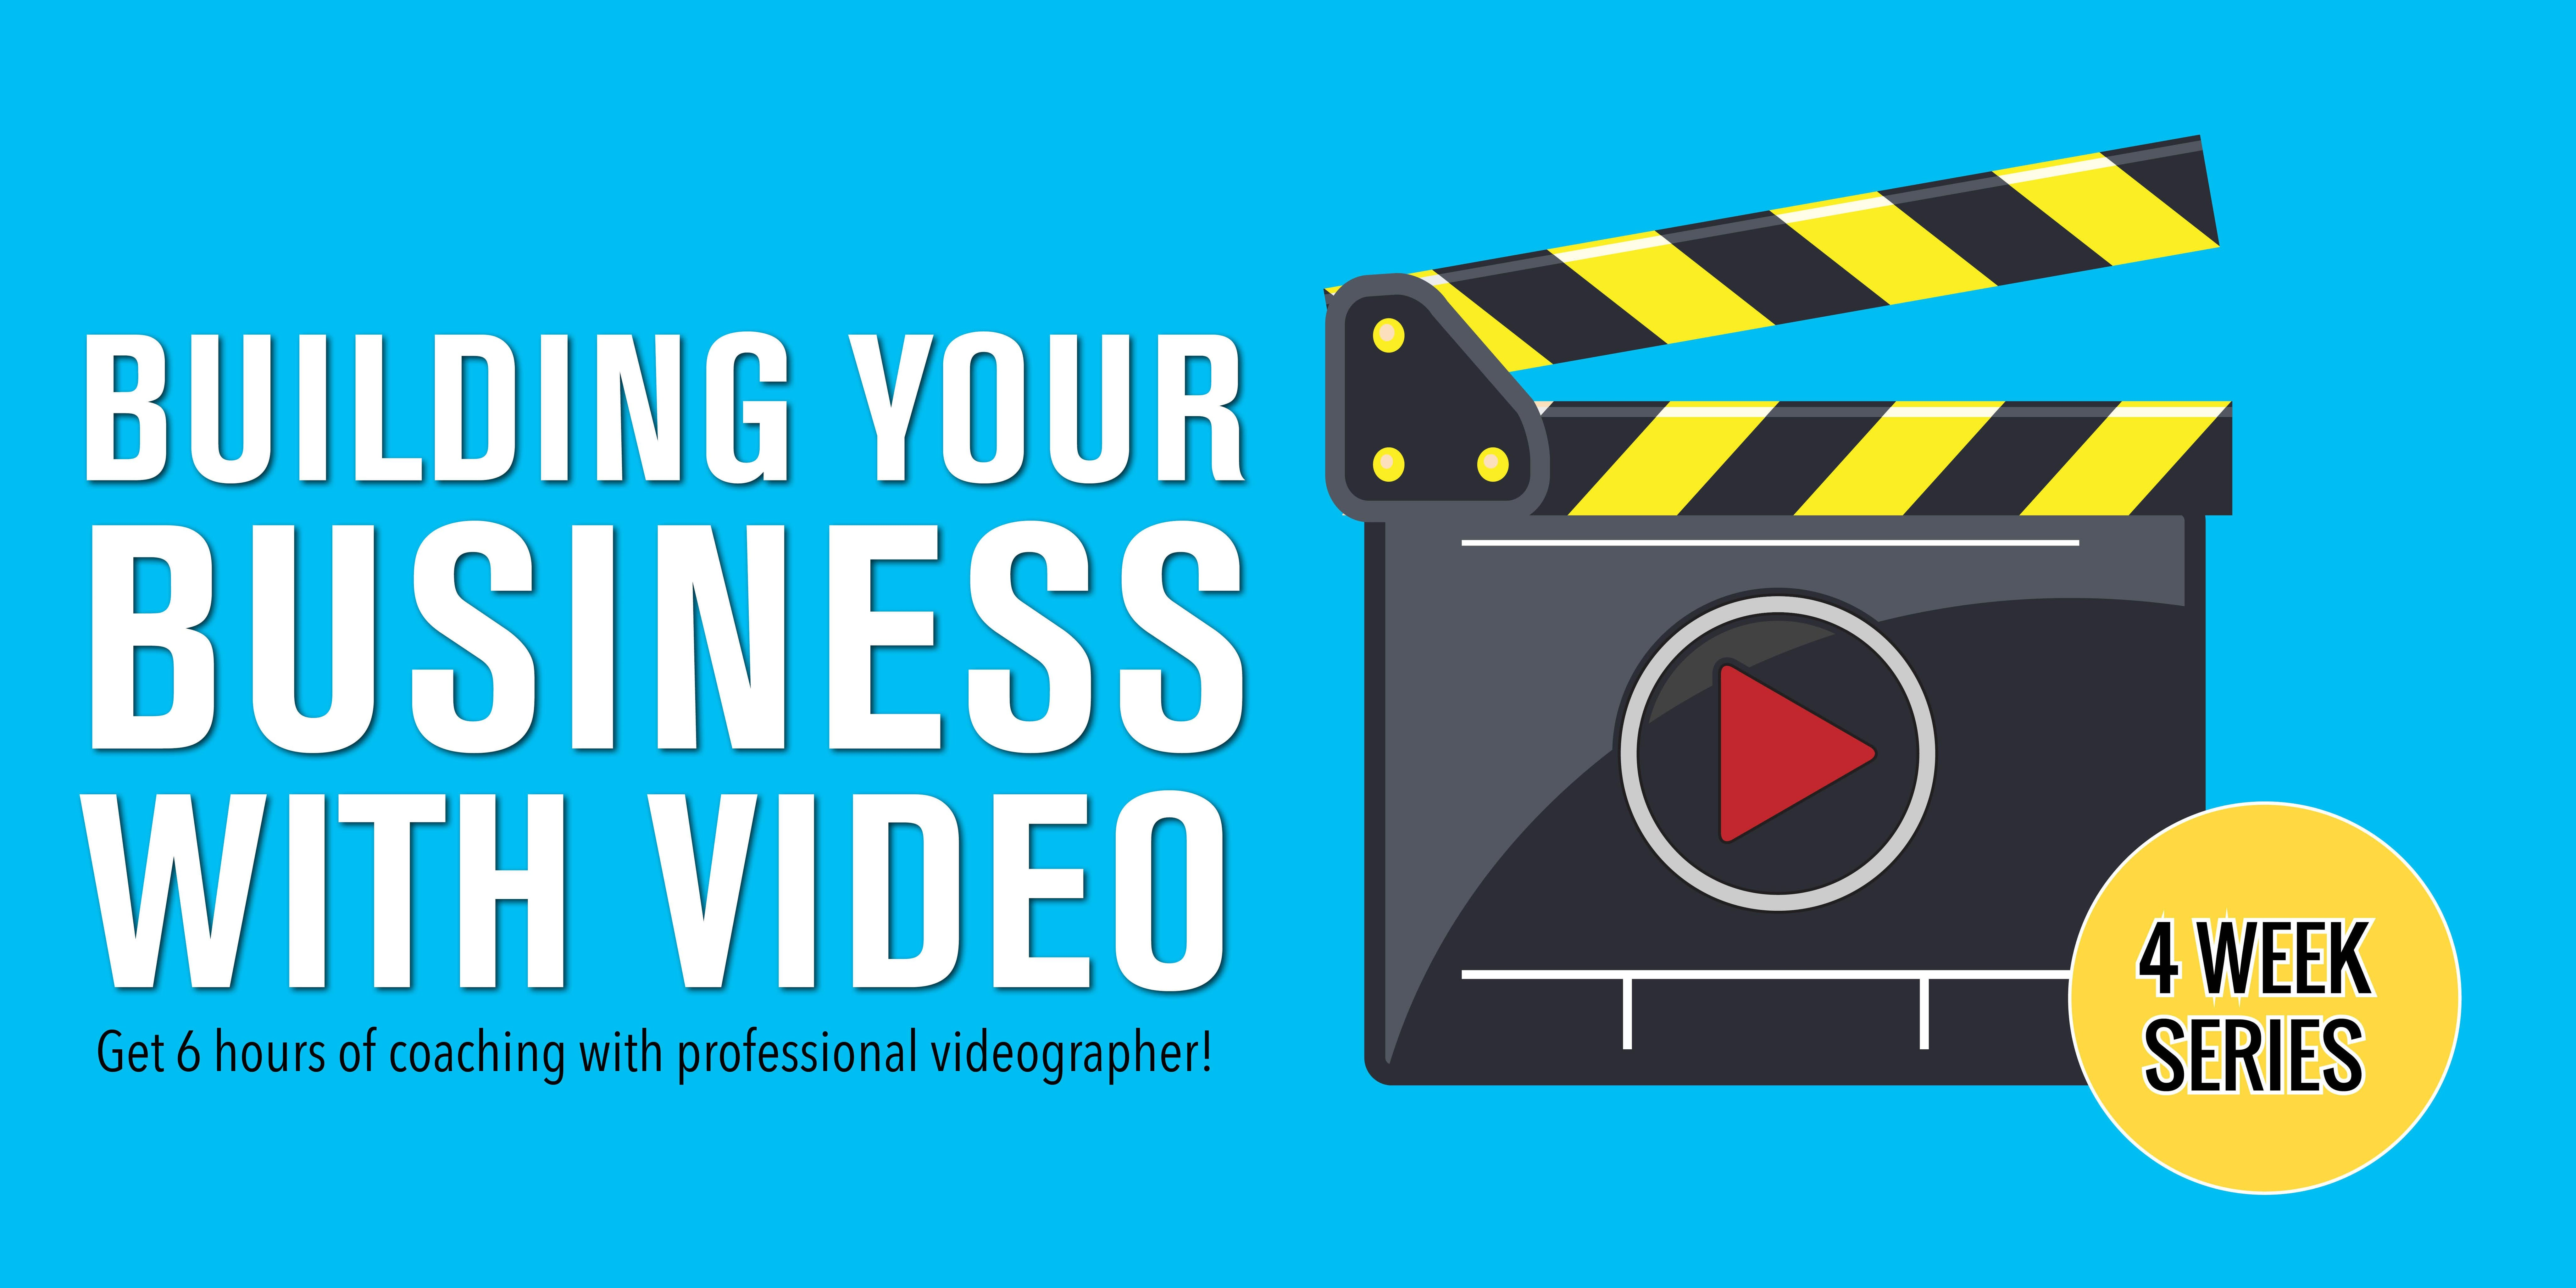 Building Your Business with Video 9/3, 9/10, 9/17, 9/24